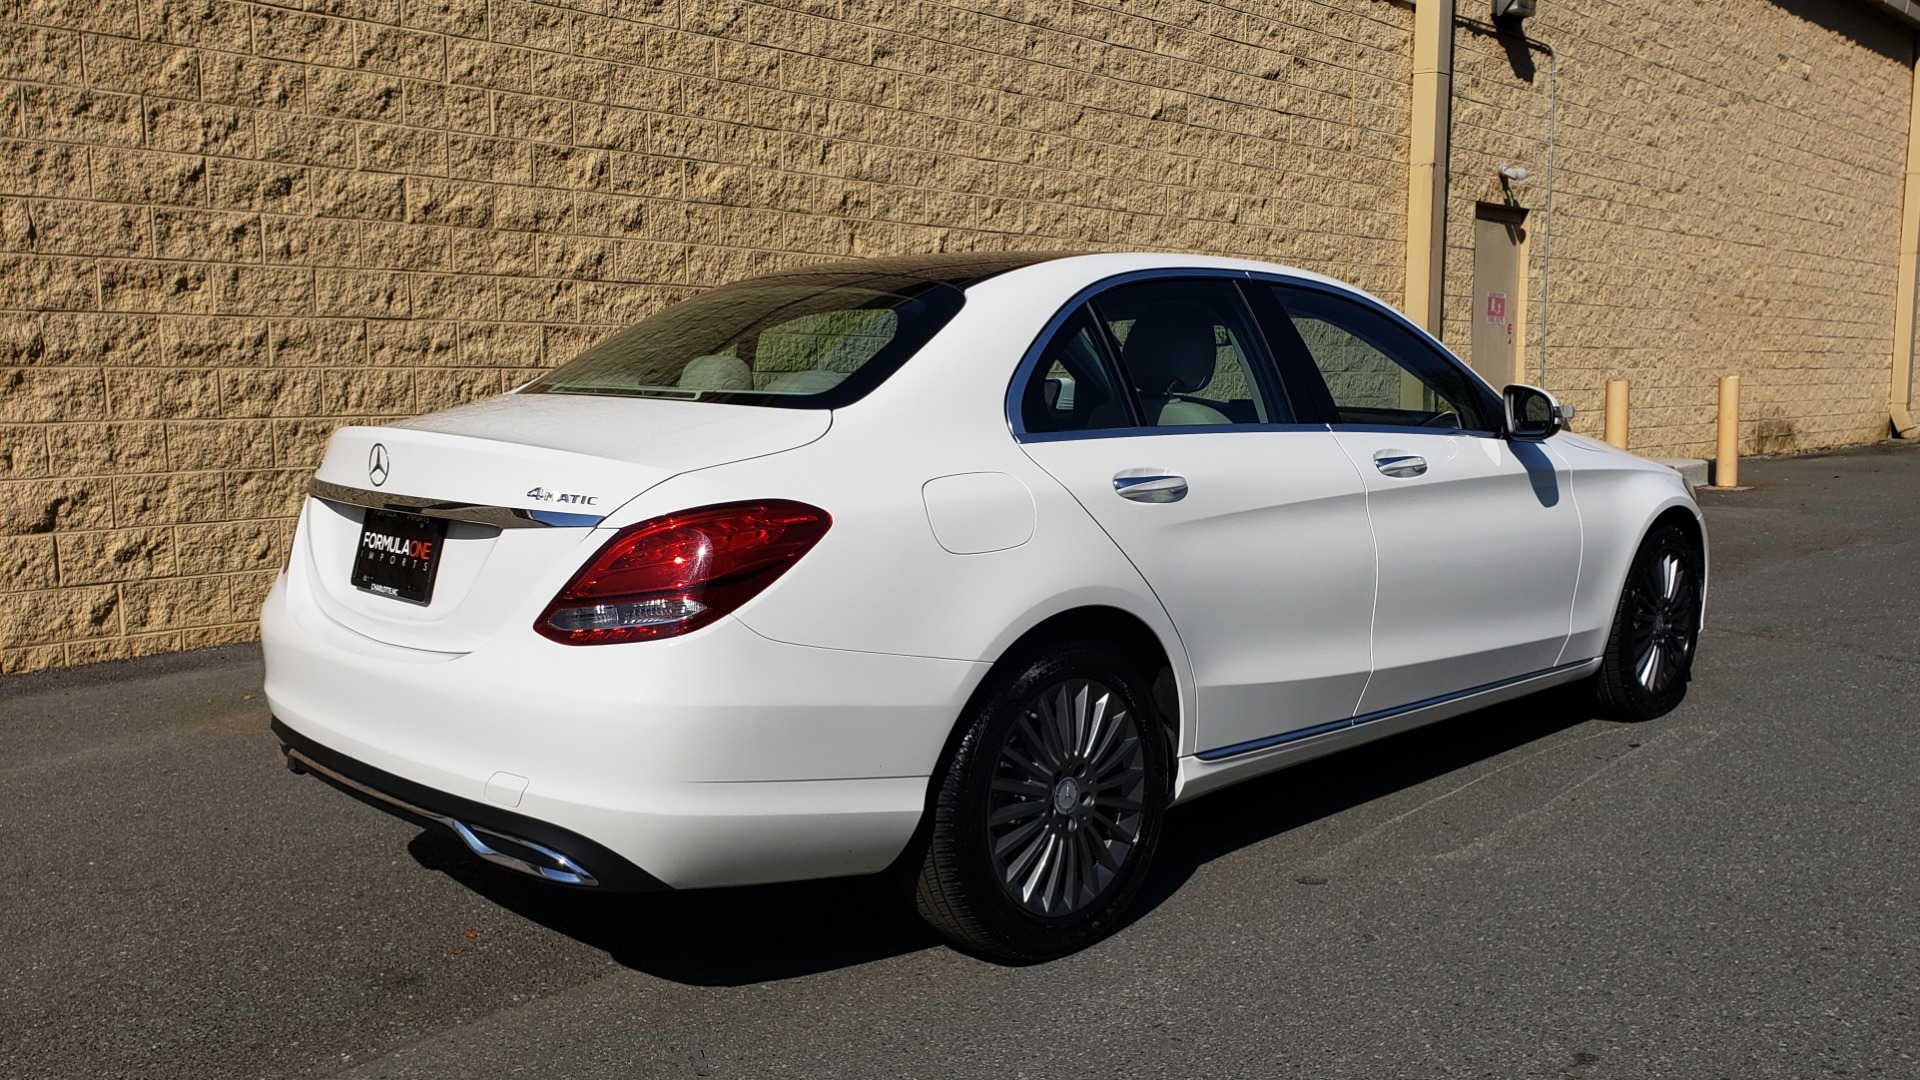 Used 2016 Mercedes-Benz C-Class C 300 LUXURY / NAV / PANO-ROOF / REARVIEW / BSM / HTD STS for sale Sold at Formula Imports in Charlotte NC 28227 6